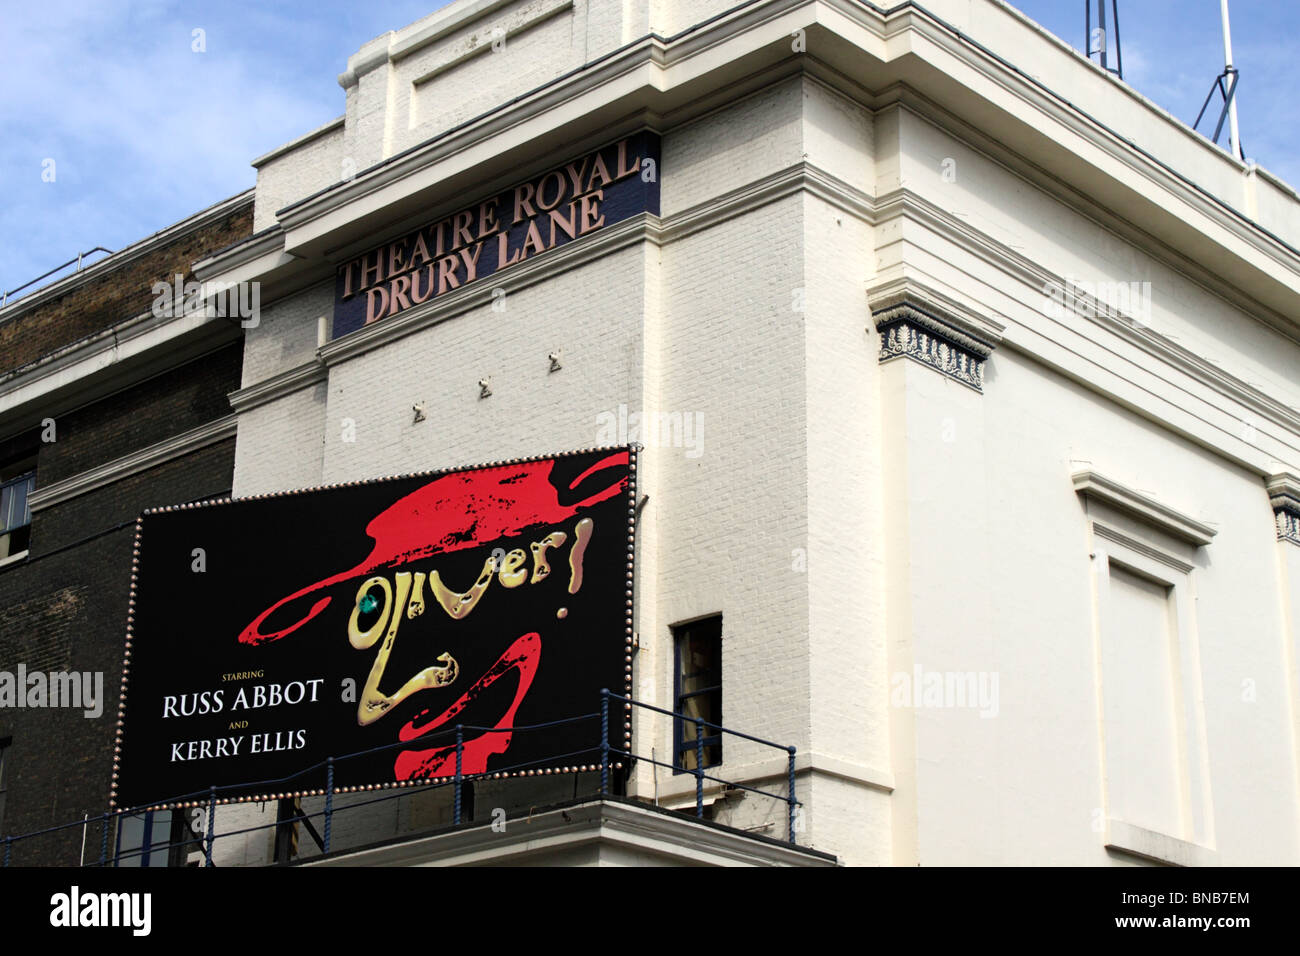 Oliver showing at the Theatre Royal Drury Lane London July 2010 Stock Photo